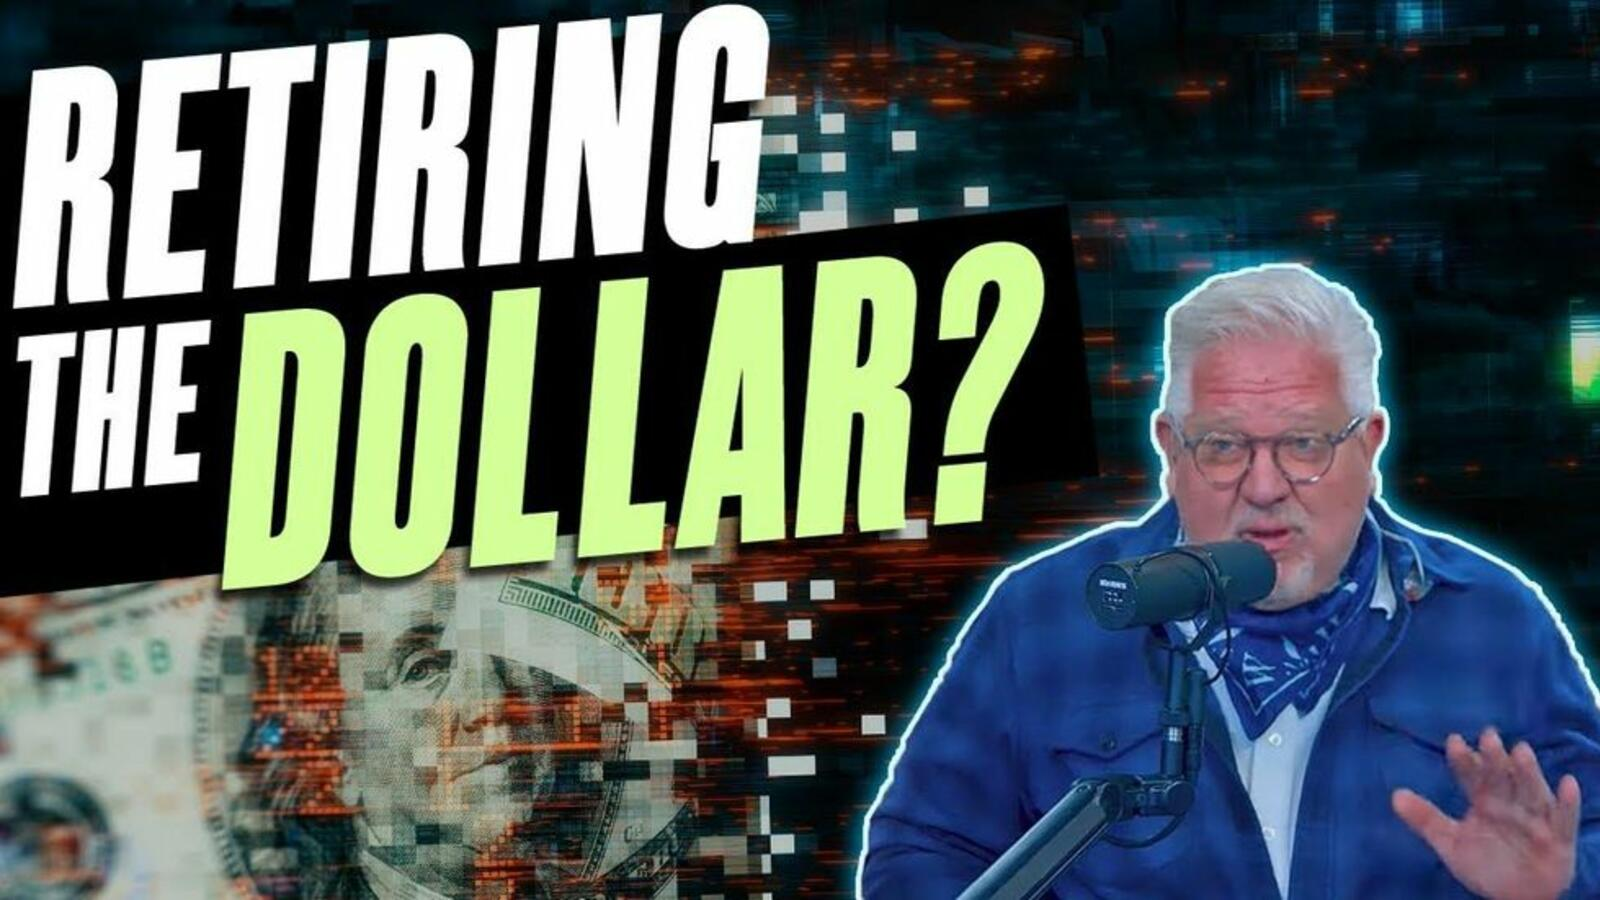 Woke 'DIGITAL DOLLARS' are coming to replace US dollar as world's reserv...